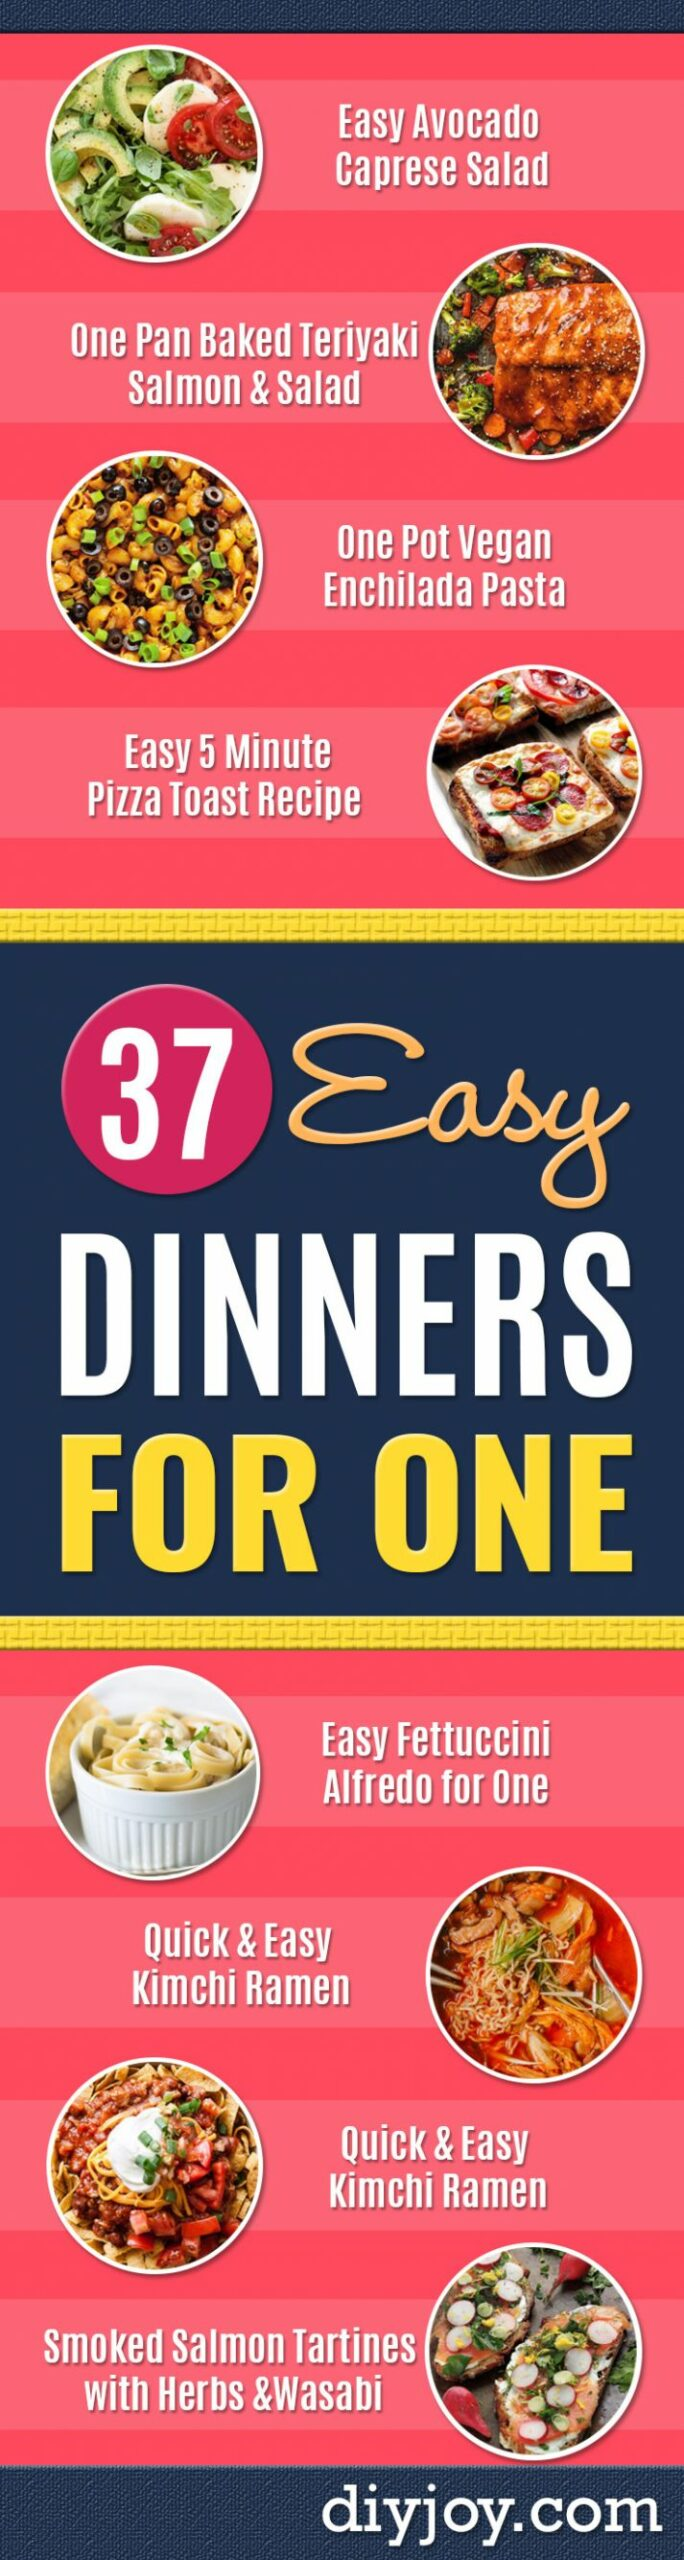 10 Easy Dinners for One - Recipes Cooking For One Person